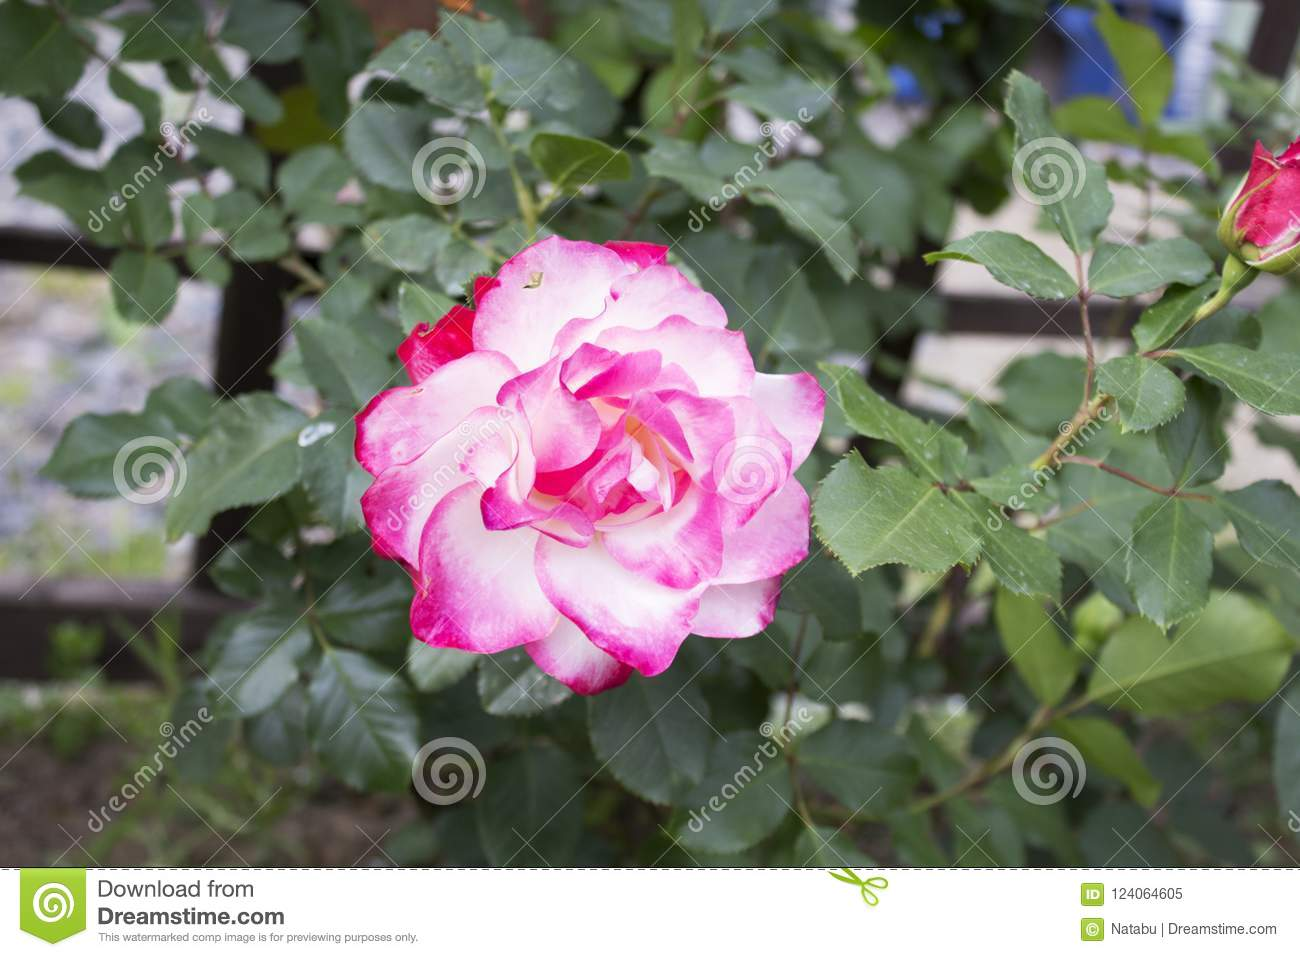 Big beautiful pink fully faded garden rose stock image image of download big beautiful pink fully faded garden rose stock image image of lifestyle bright m4hsunfo